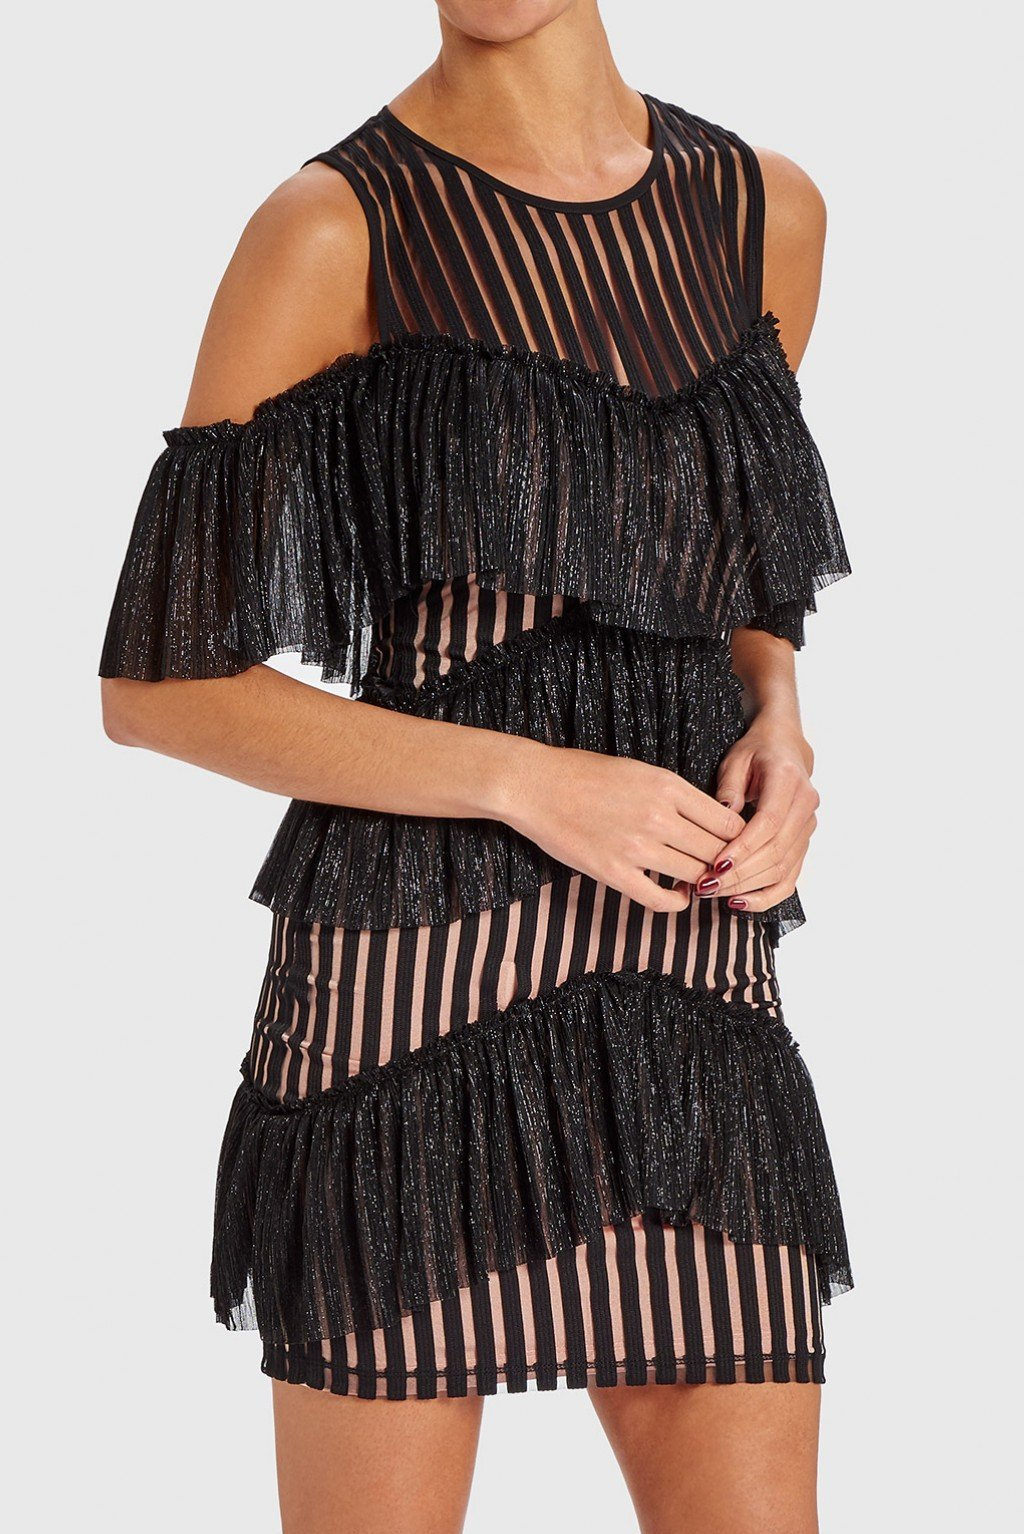 FOREVER UNIQUE MINDY COLD SHOULDER RUFFLE MINI DRESS - BLACK